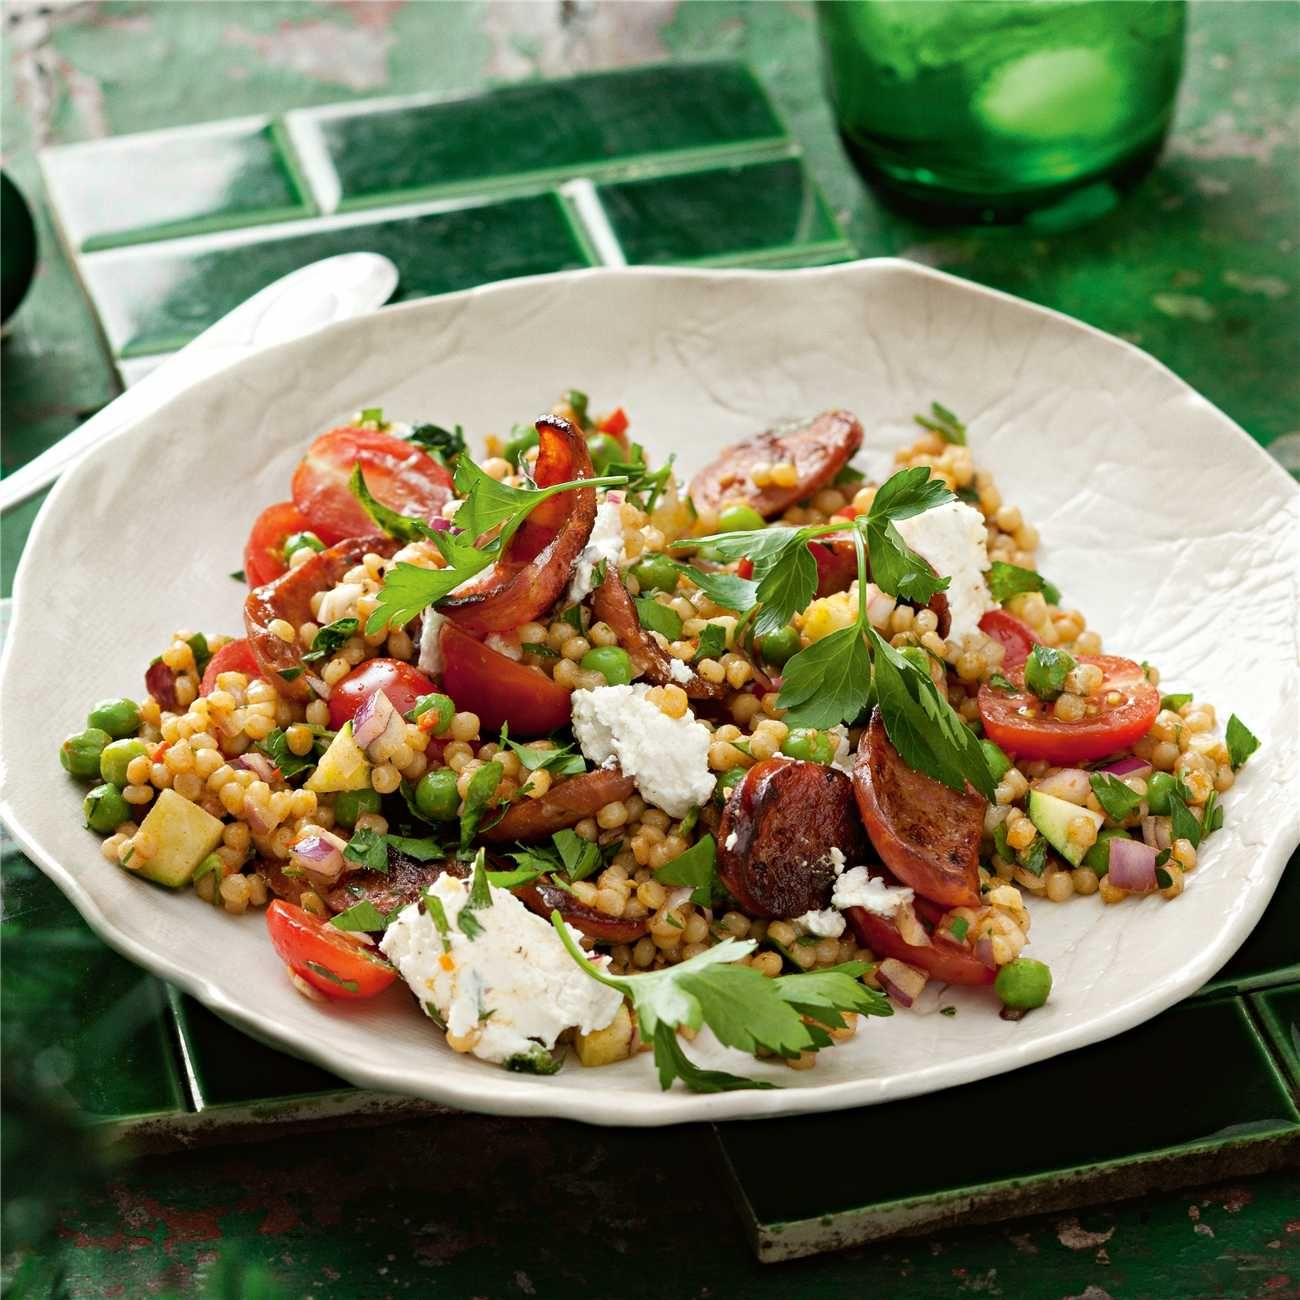 Couscous Chorizo Zucchini Salad Zucchini Salad Couscous Recipes Couscous